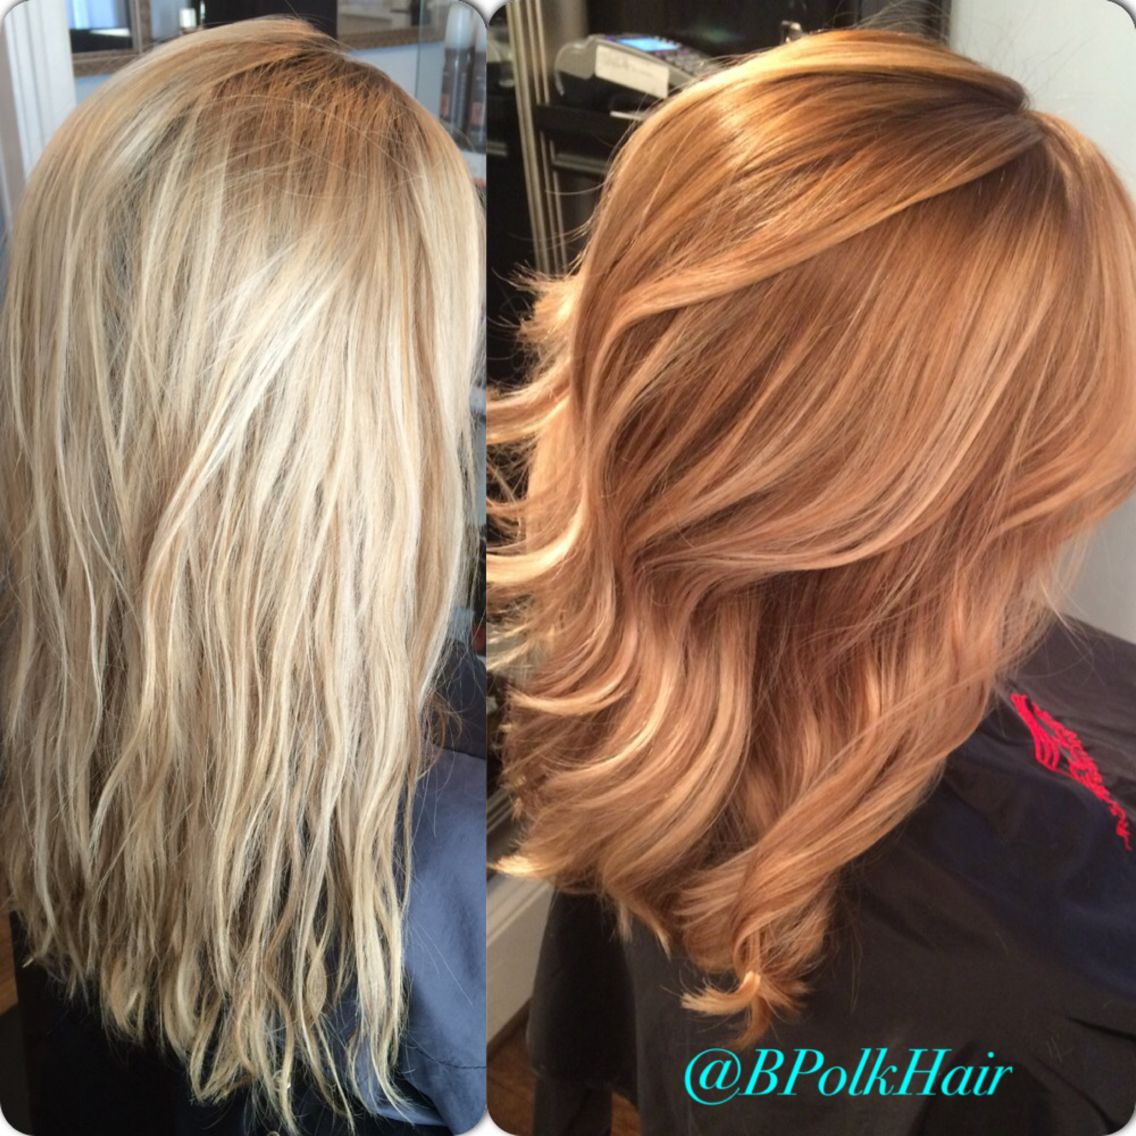 Before After From Blonde To Rich Copper Balayage Dyed Red